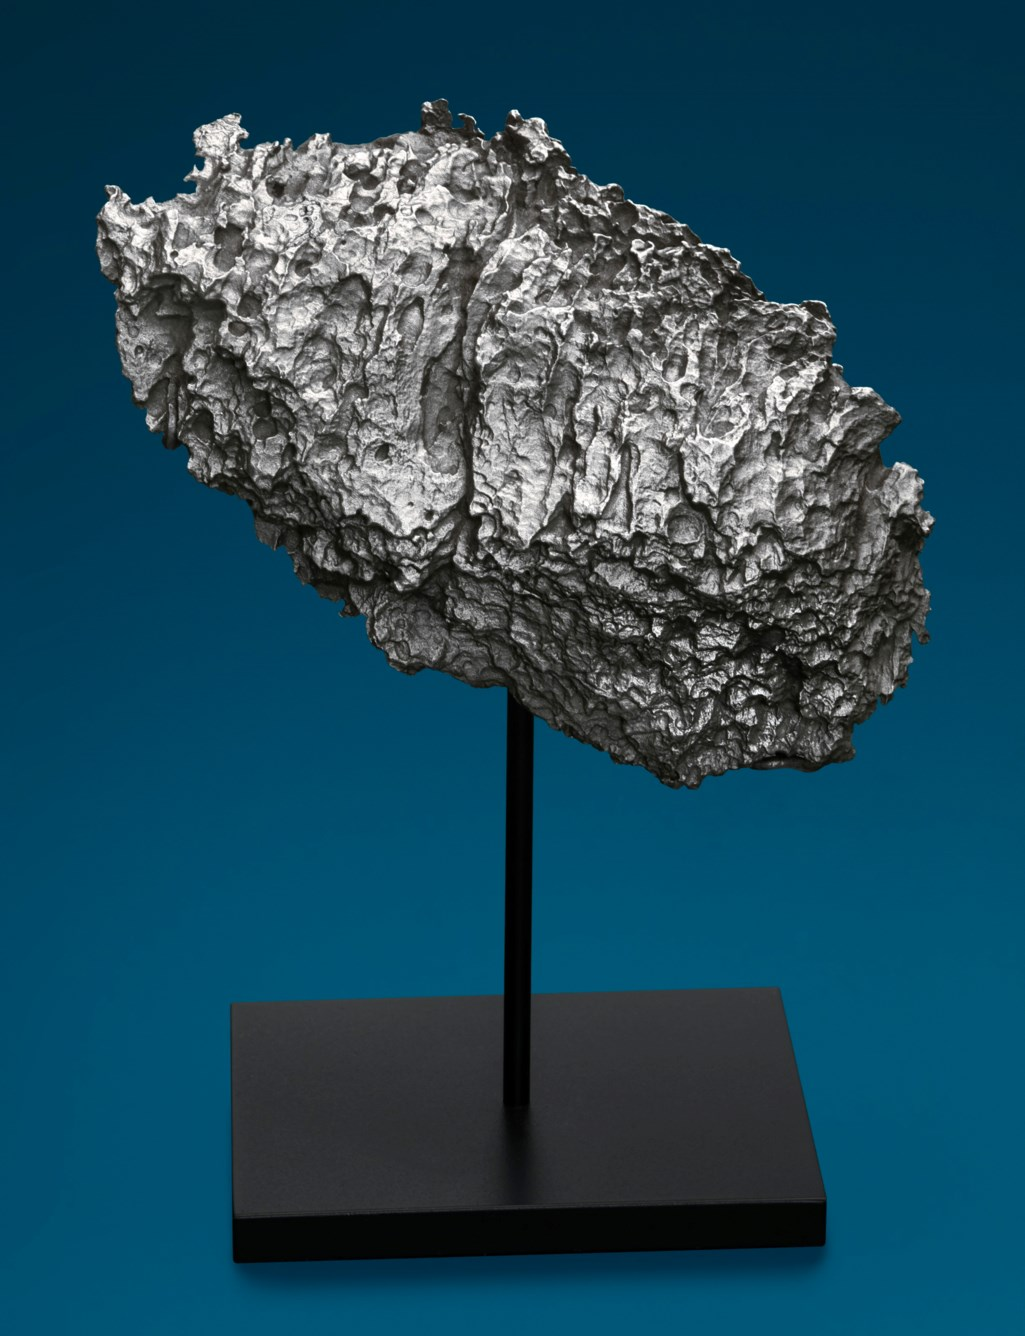 DRONINO METEORITE — EXOTICA FROM OUTER SPACE